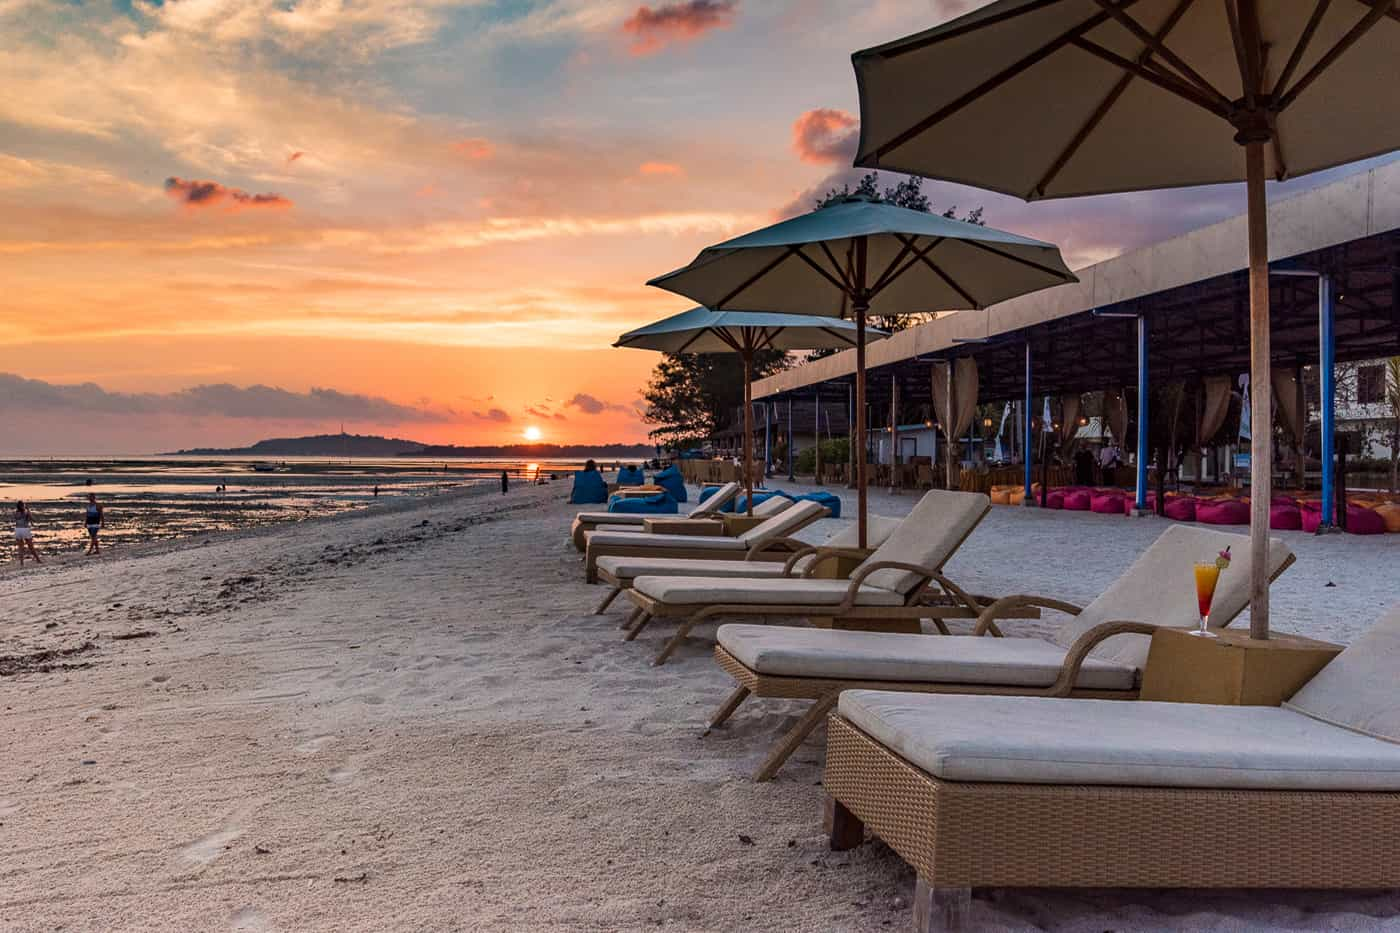 Beach sunrise in the Gili Islands of Lombok Indonesia